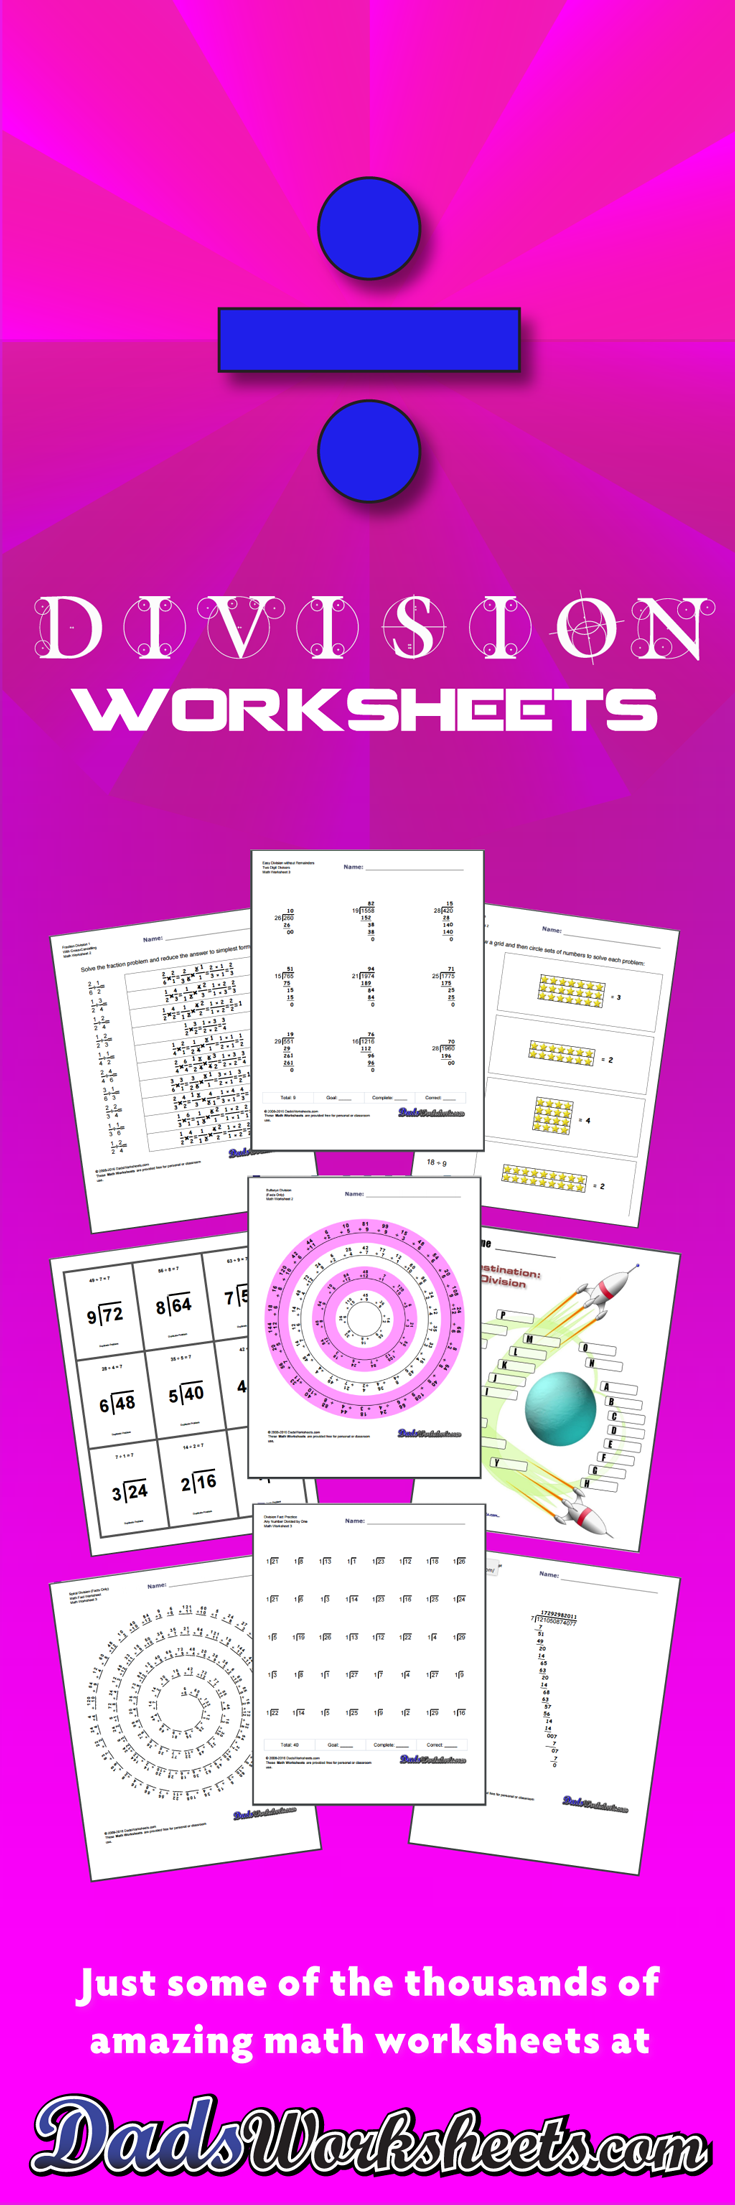 Worksheets – Division Worksheets with Pictures